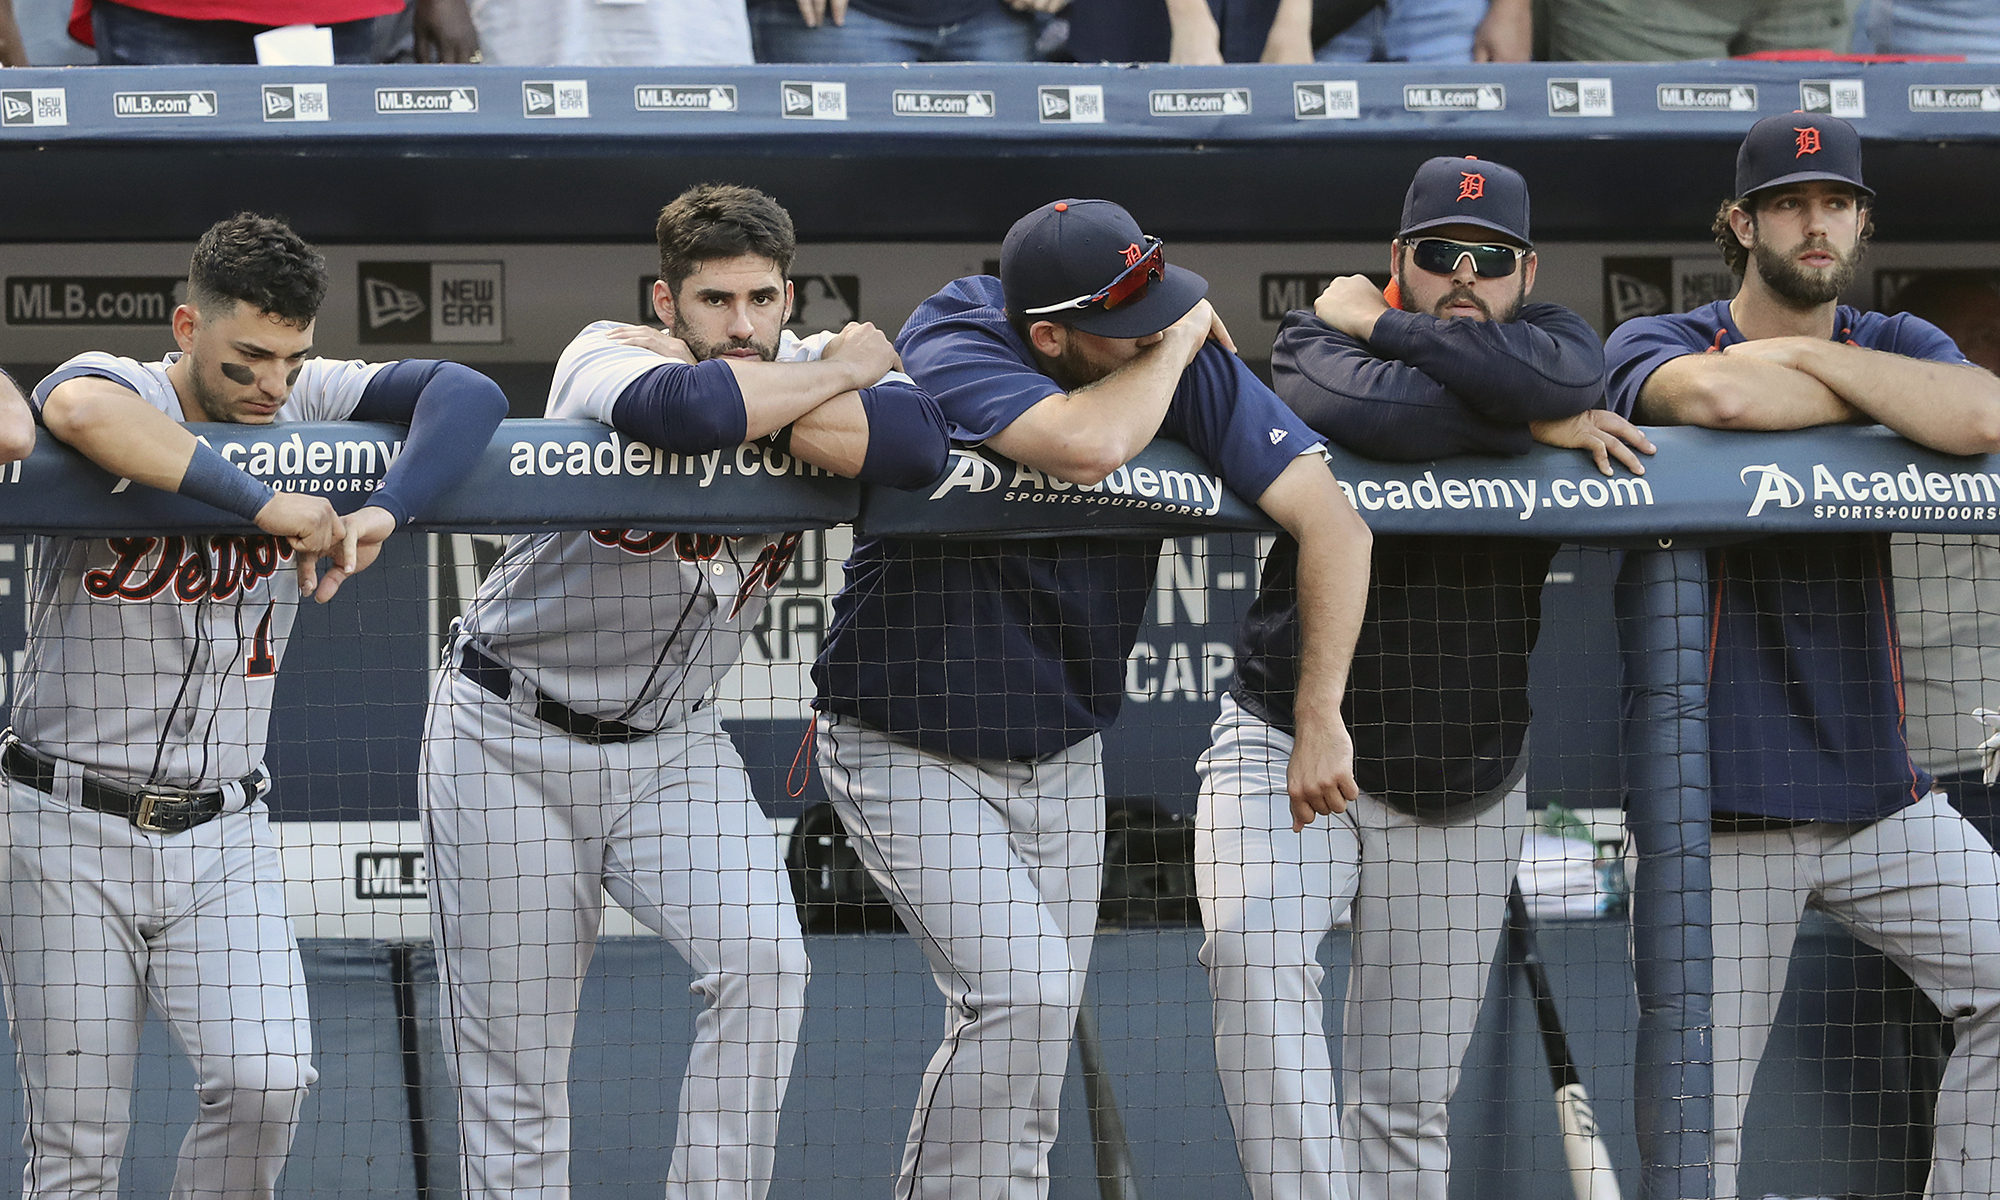 Detroit Tigers players react in the dugout as the Tigers' Justin Upton strikes out in the ninth inning to fall to the Braves 1-0 at Turner Field, Sunday, Oct. 2, 2016, in Atlanta. (Curtis Compton/Atlanta Journal-Constitution via AP)